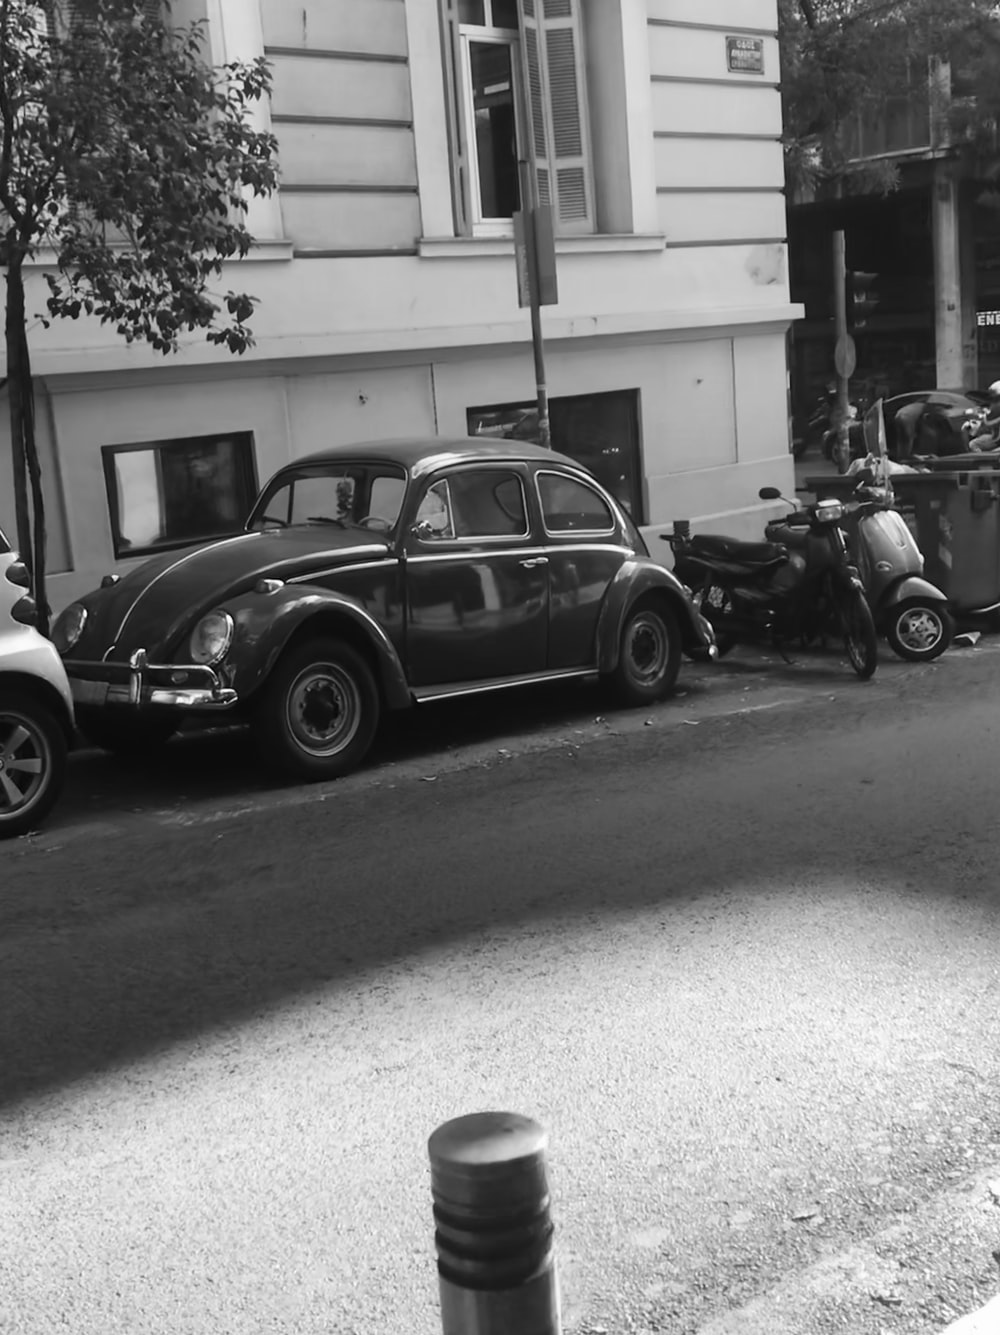 grayscale photo of black Volkswagen Beetle parked at roadside